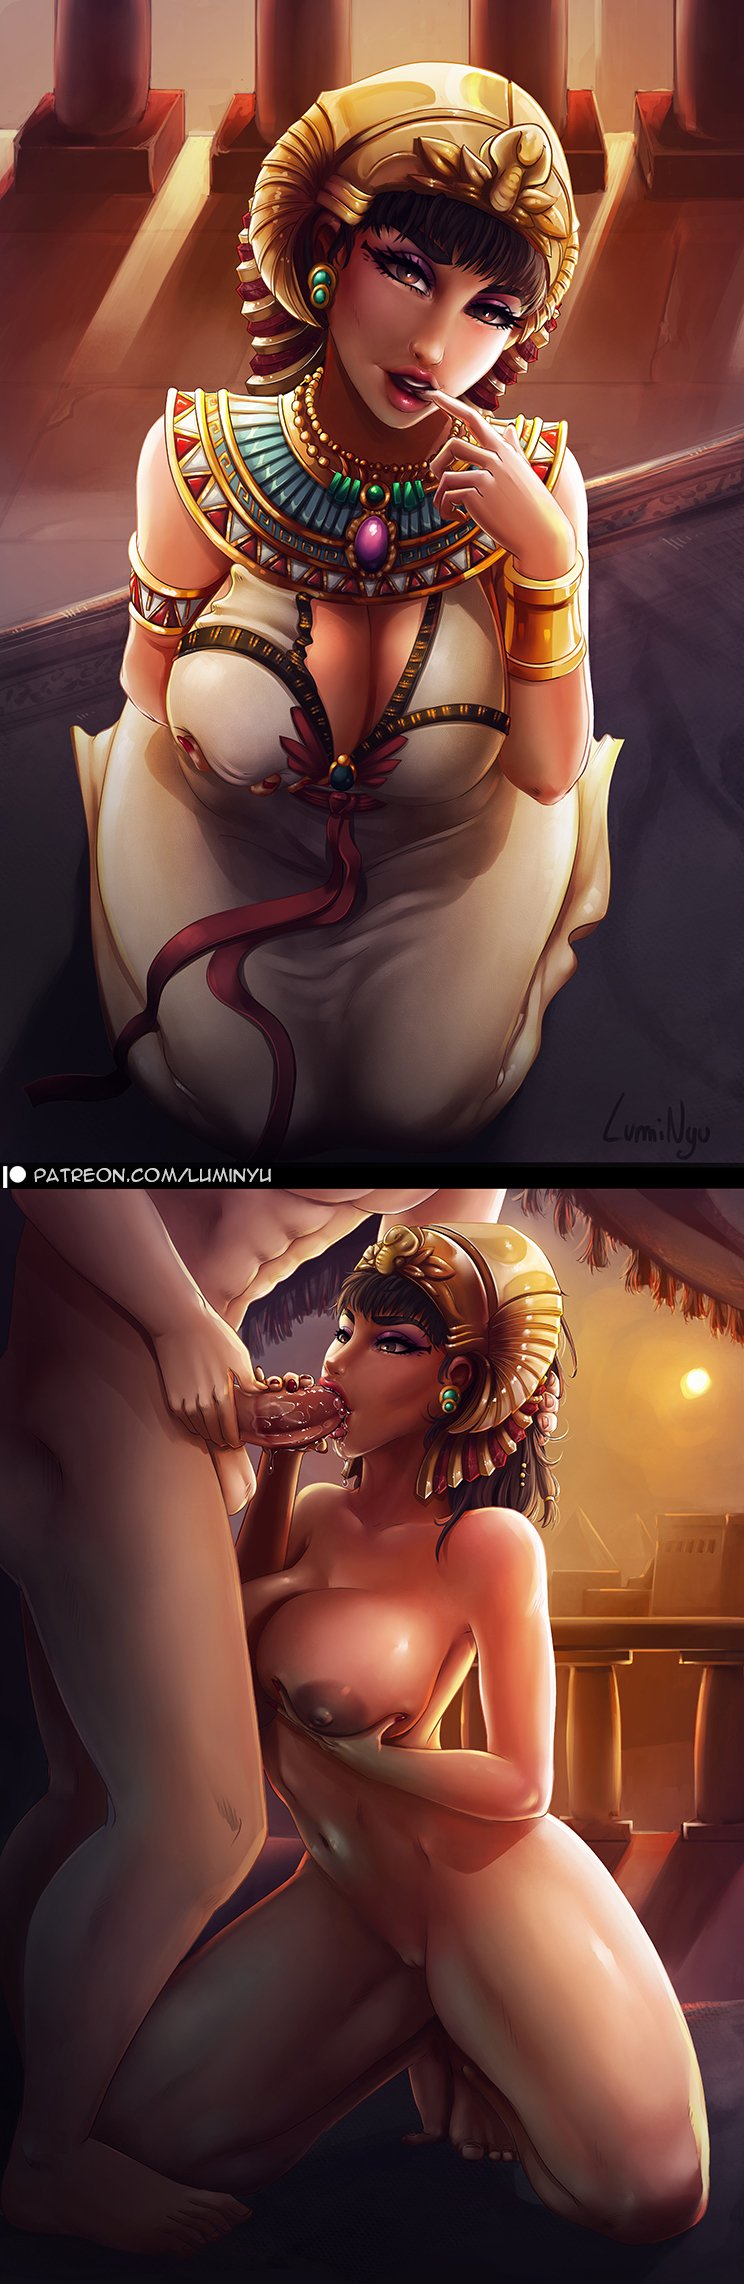 1girl areolae barefoot breast_grab breasts brown_eyes brown_hair civilization_(series) civilization_vi cleft_of_venus cleopatra curvy dark_areolae dark_skin dress egyptian egyptian_clothes erection eyelashes eyeliner eyeshadow fellatio gold_trim grabbing hand_on_another's_head hand_on_own_penis head_out_of_frame headdress hetero highres jewelry large_breasts lips lipstick luminyu makeup mascara mouth navel nipples nude open_mouth oral patreon_logo patreon_username penis pink_lipstick purple_eyeshadow pussy saliva self_fondle signature solo_focus testicles thick_thighs thighs uncensored usekh_collar